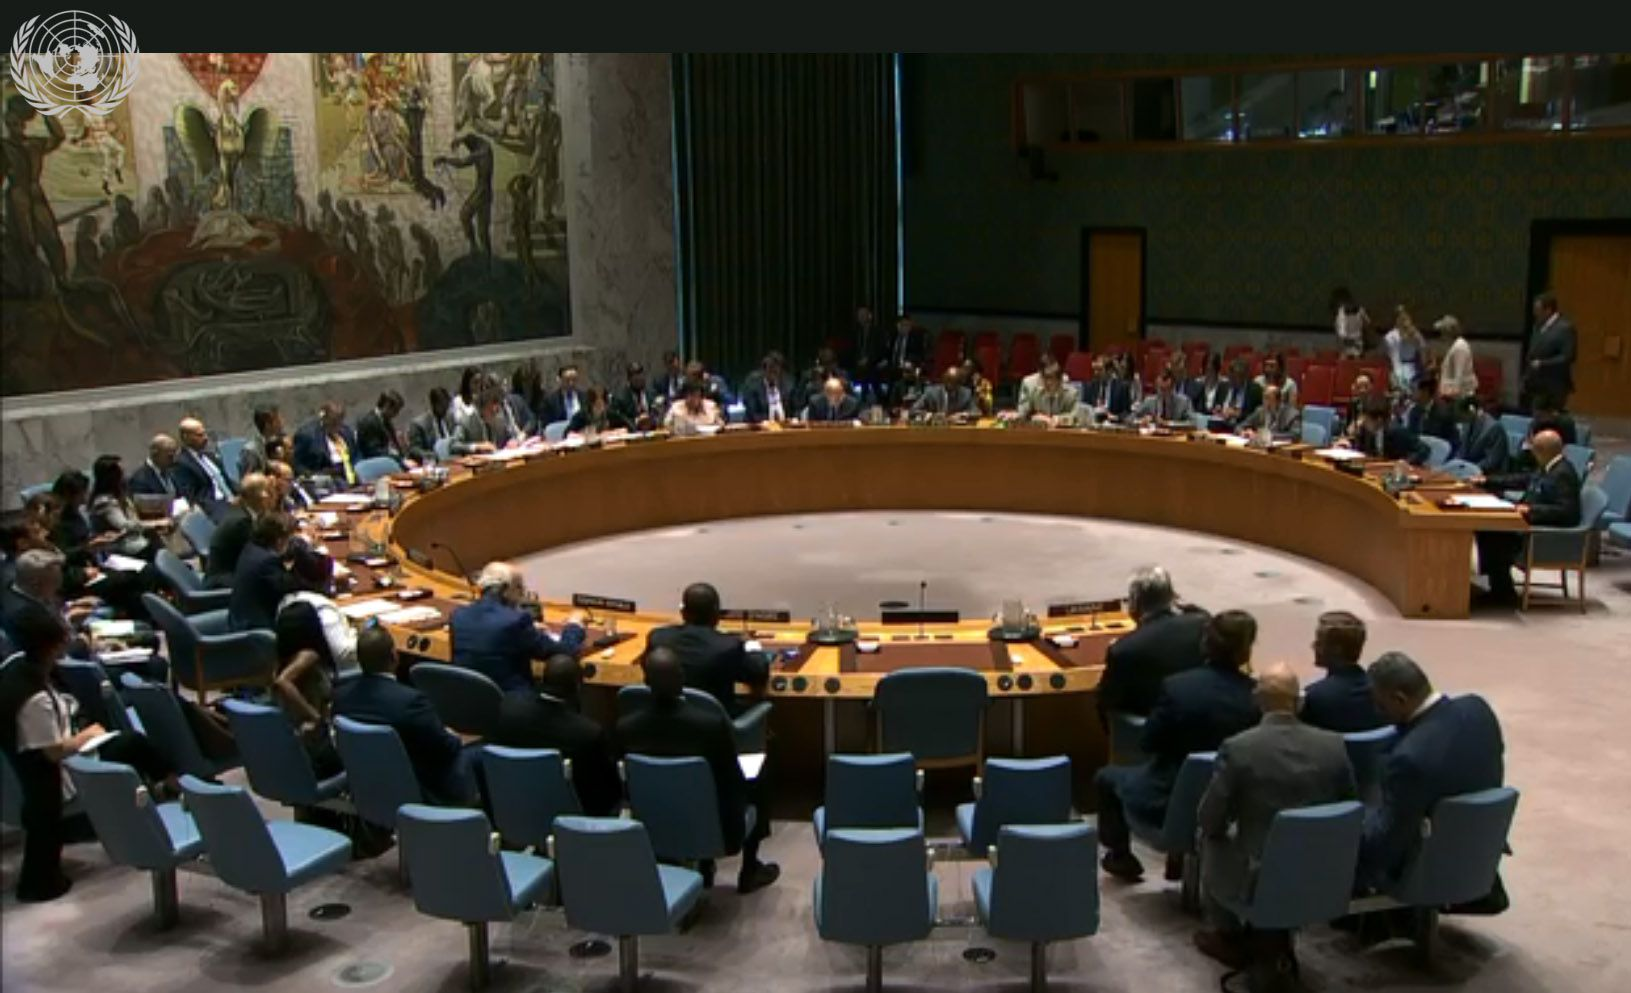 The language law in UN Security Council: what they spoke about